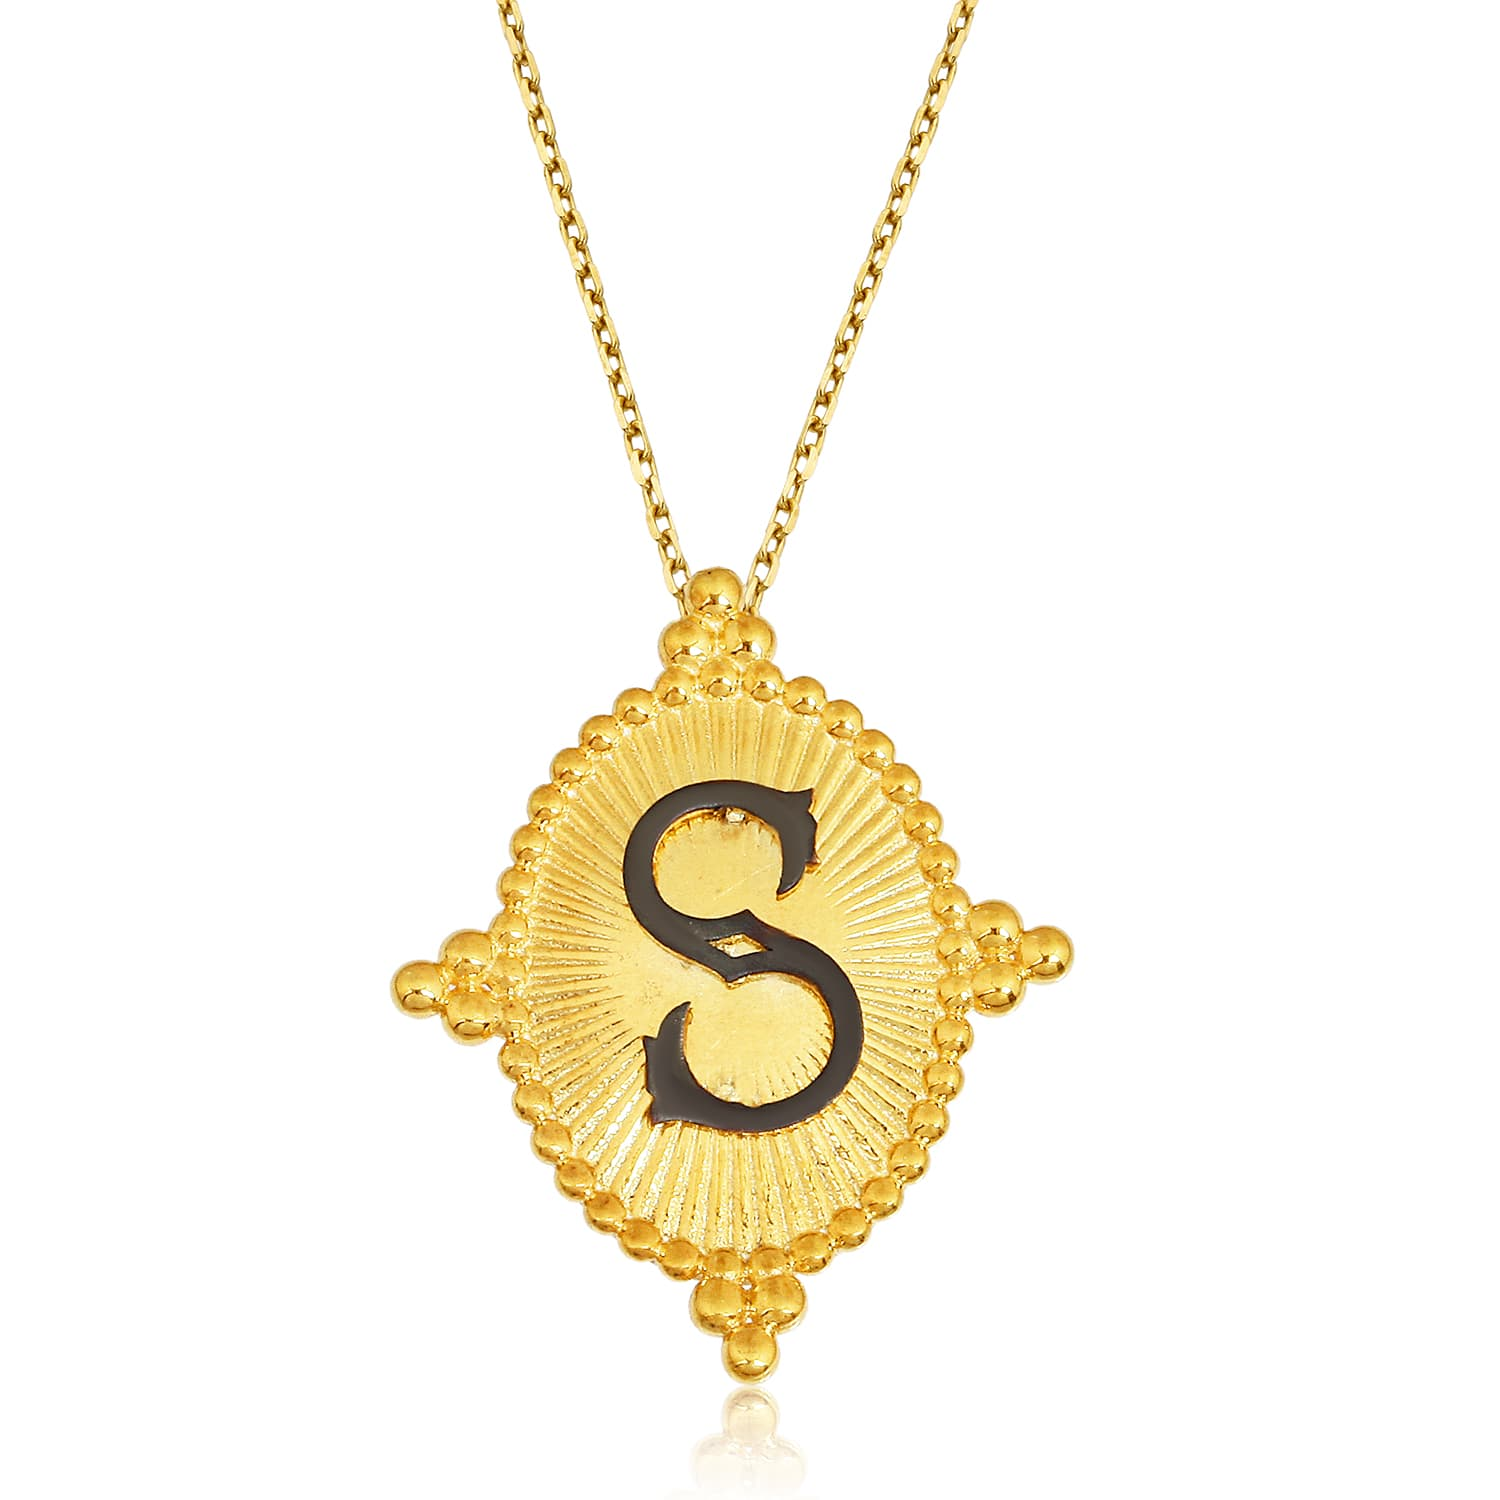 LETTER S VINTAGE NECKLACE